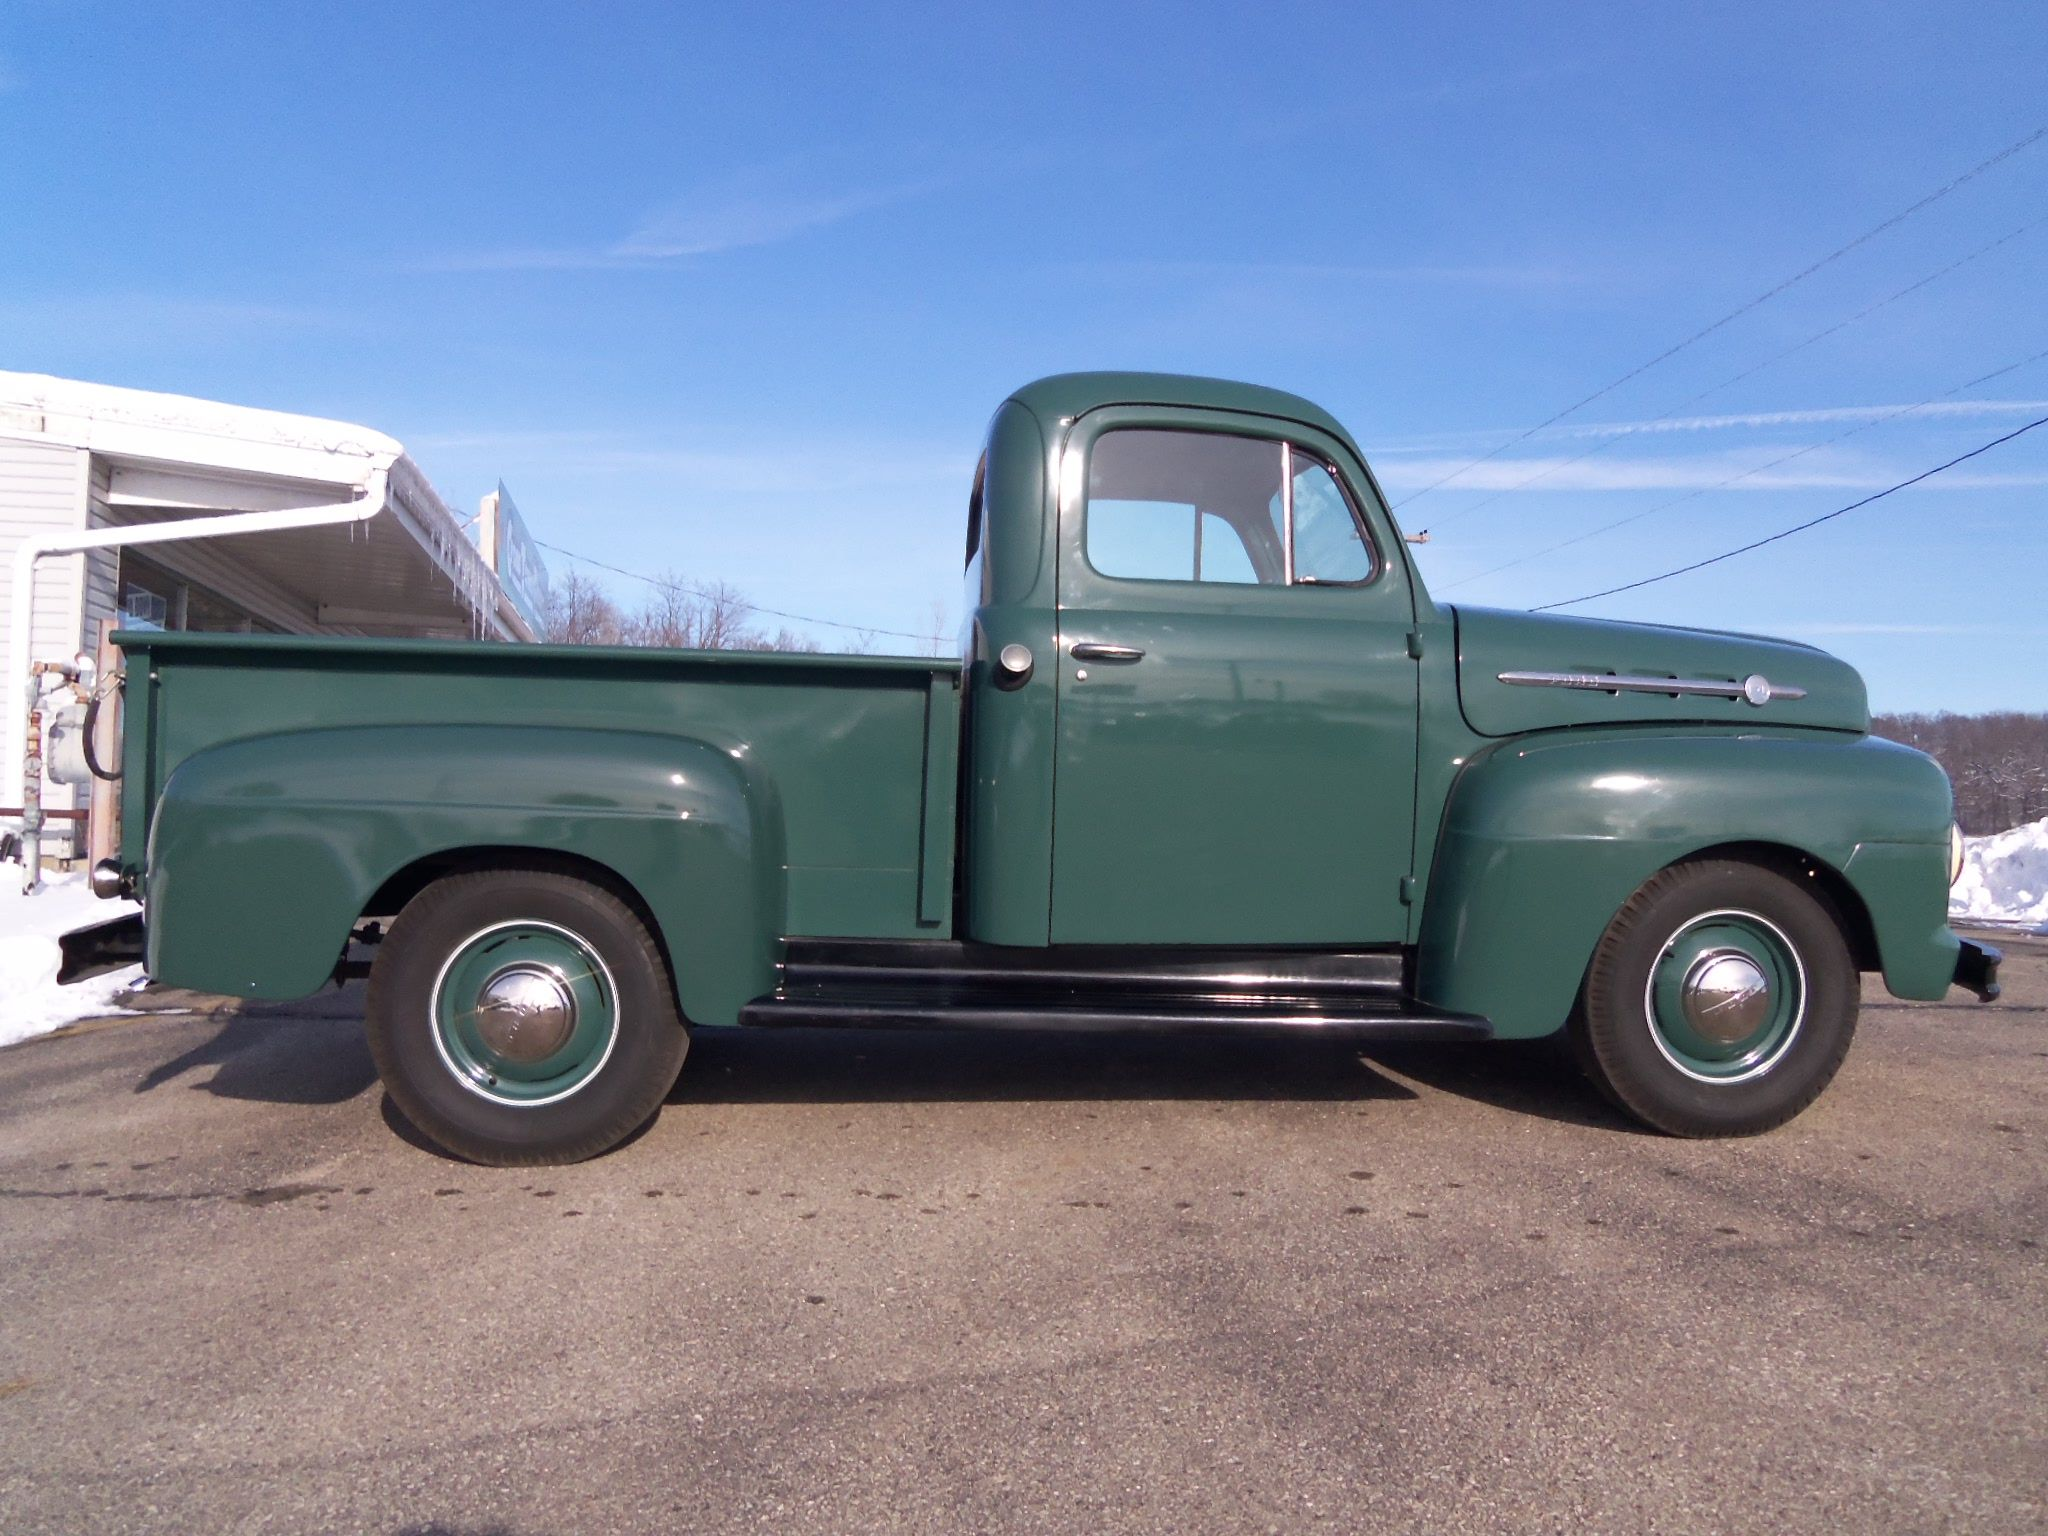 1301Cct 02 O 1949 Ford F1 Stock Frontend Photo 1 | Classic and ...